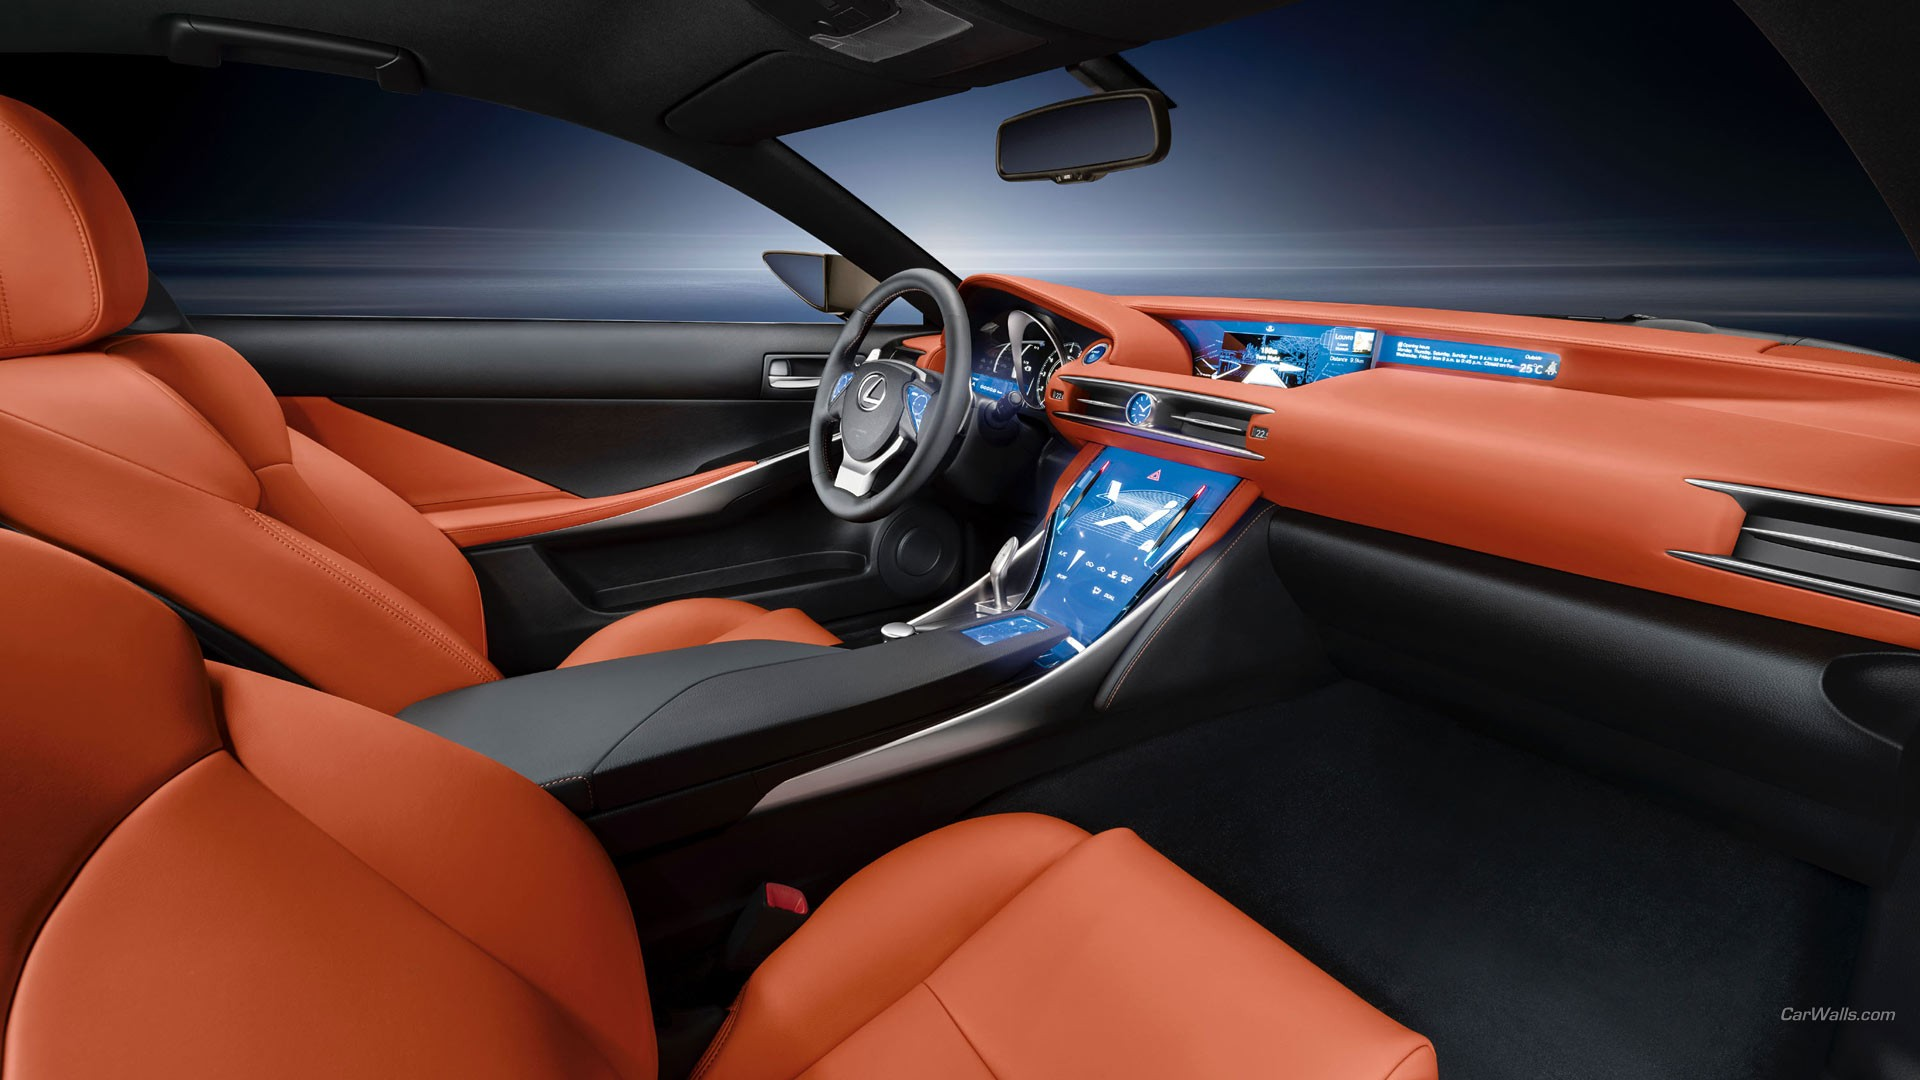 Super Car 5760x1080 Wallpaper Wallpaper Concept Cars Car Interior Sports Car